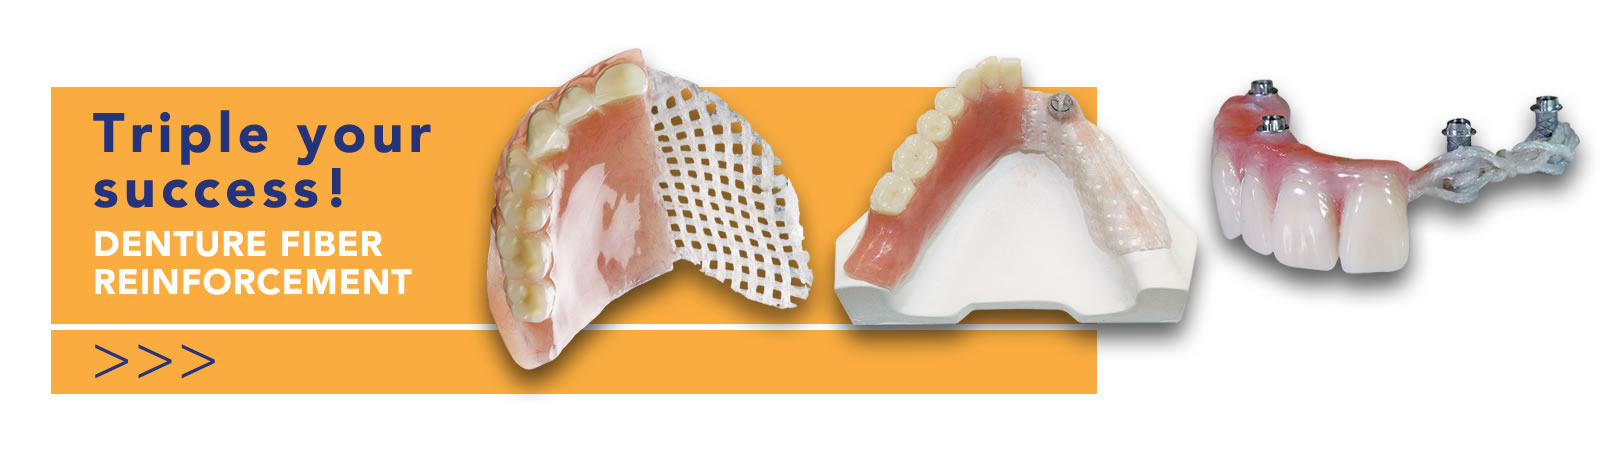 fiber reinforcement for dentures